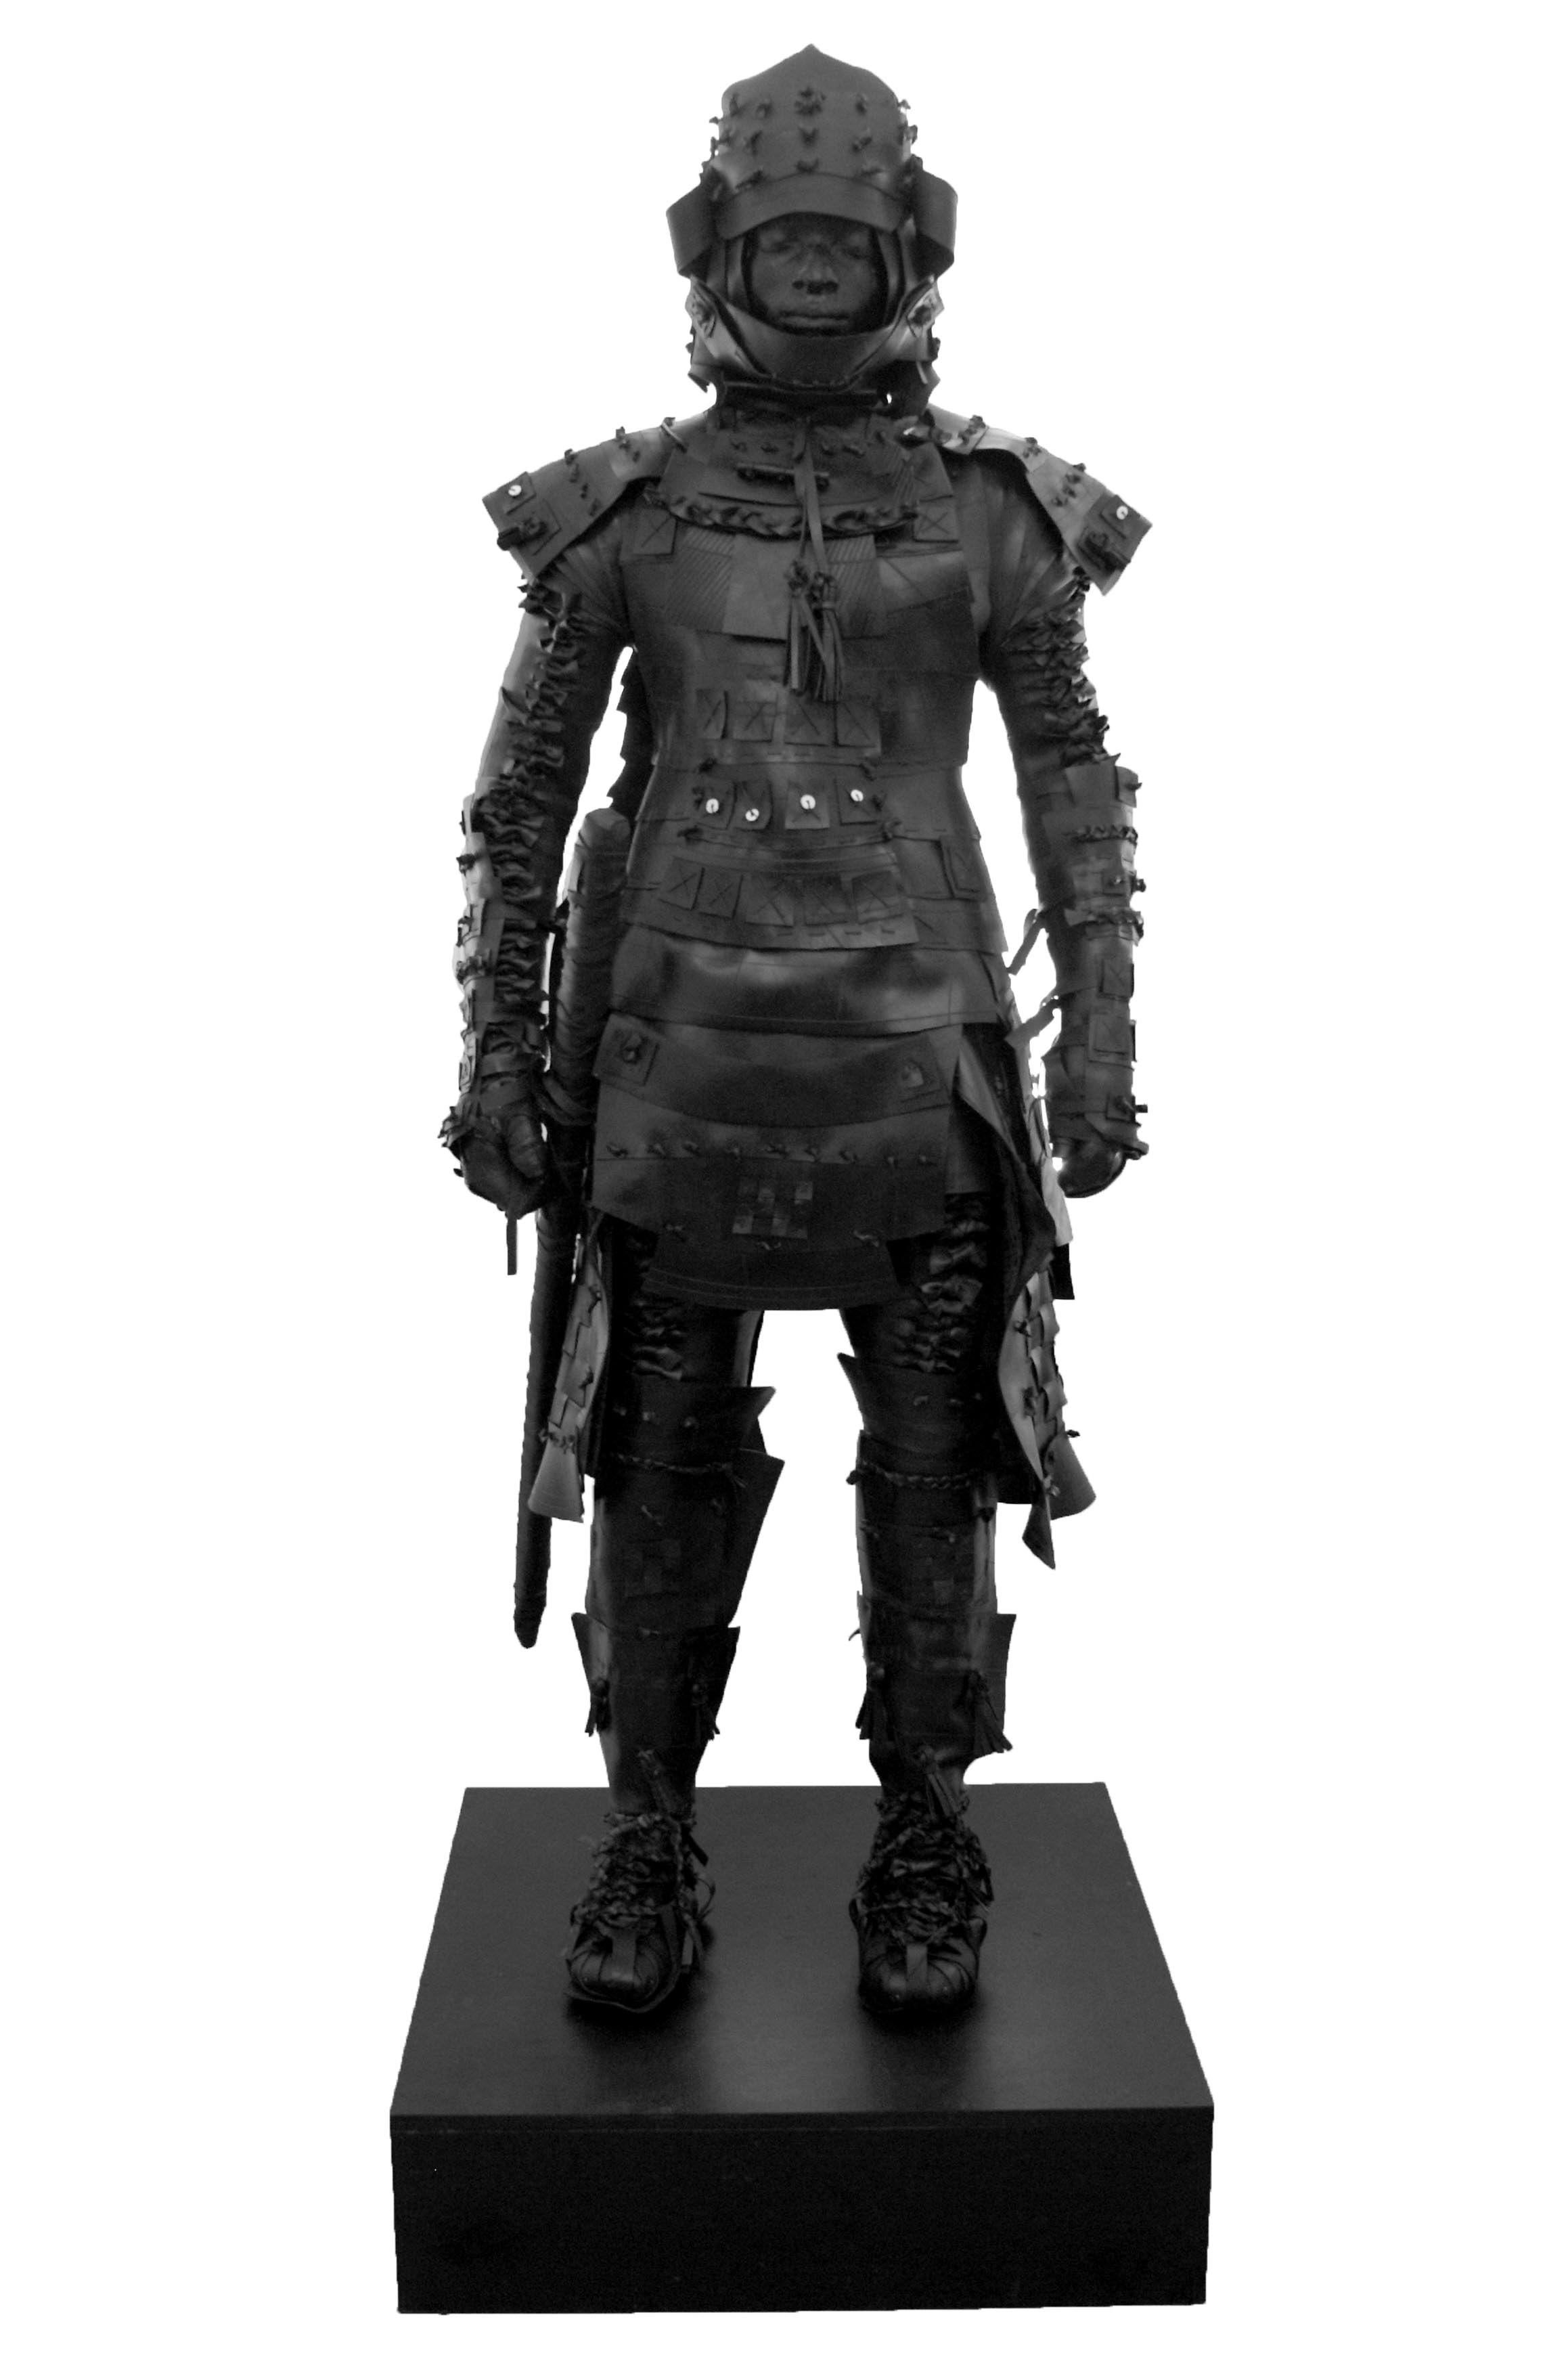 An interpretation of Yasuke, a samurai of black African descent who served a shogun by the name of Oda Nobunaga in late 16th Century feudal Japan, standing tall in samurai armour studded with ostrich shell beads, with a bow and arrows over his shoulder and a katana at his side.